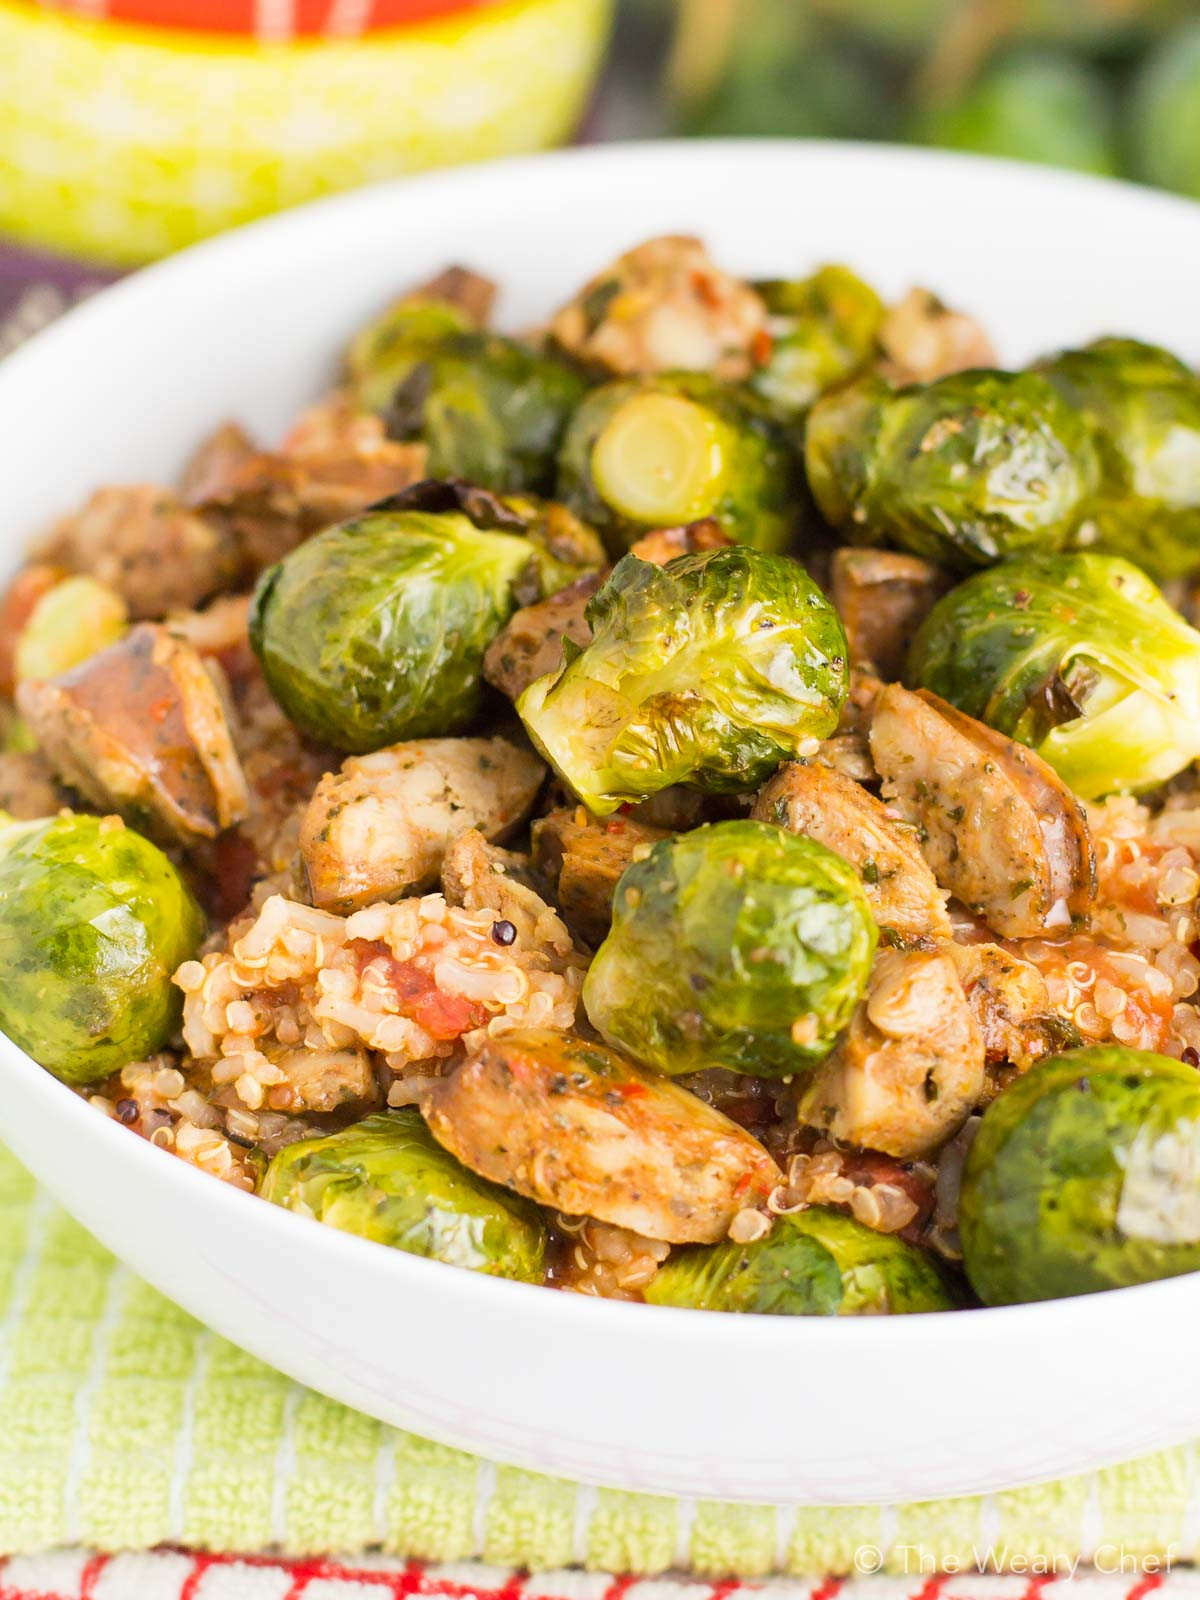 Healthy Quinoa Dinner Recipes  30 Minute Quinoa Recipe with Sausage and Brussels Sprouts